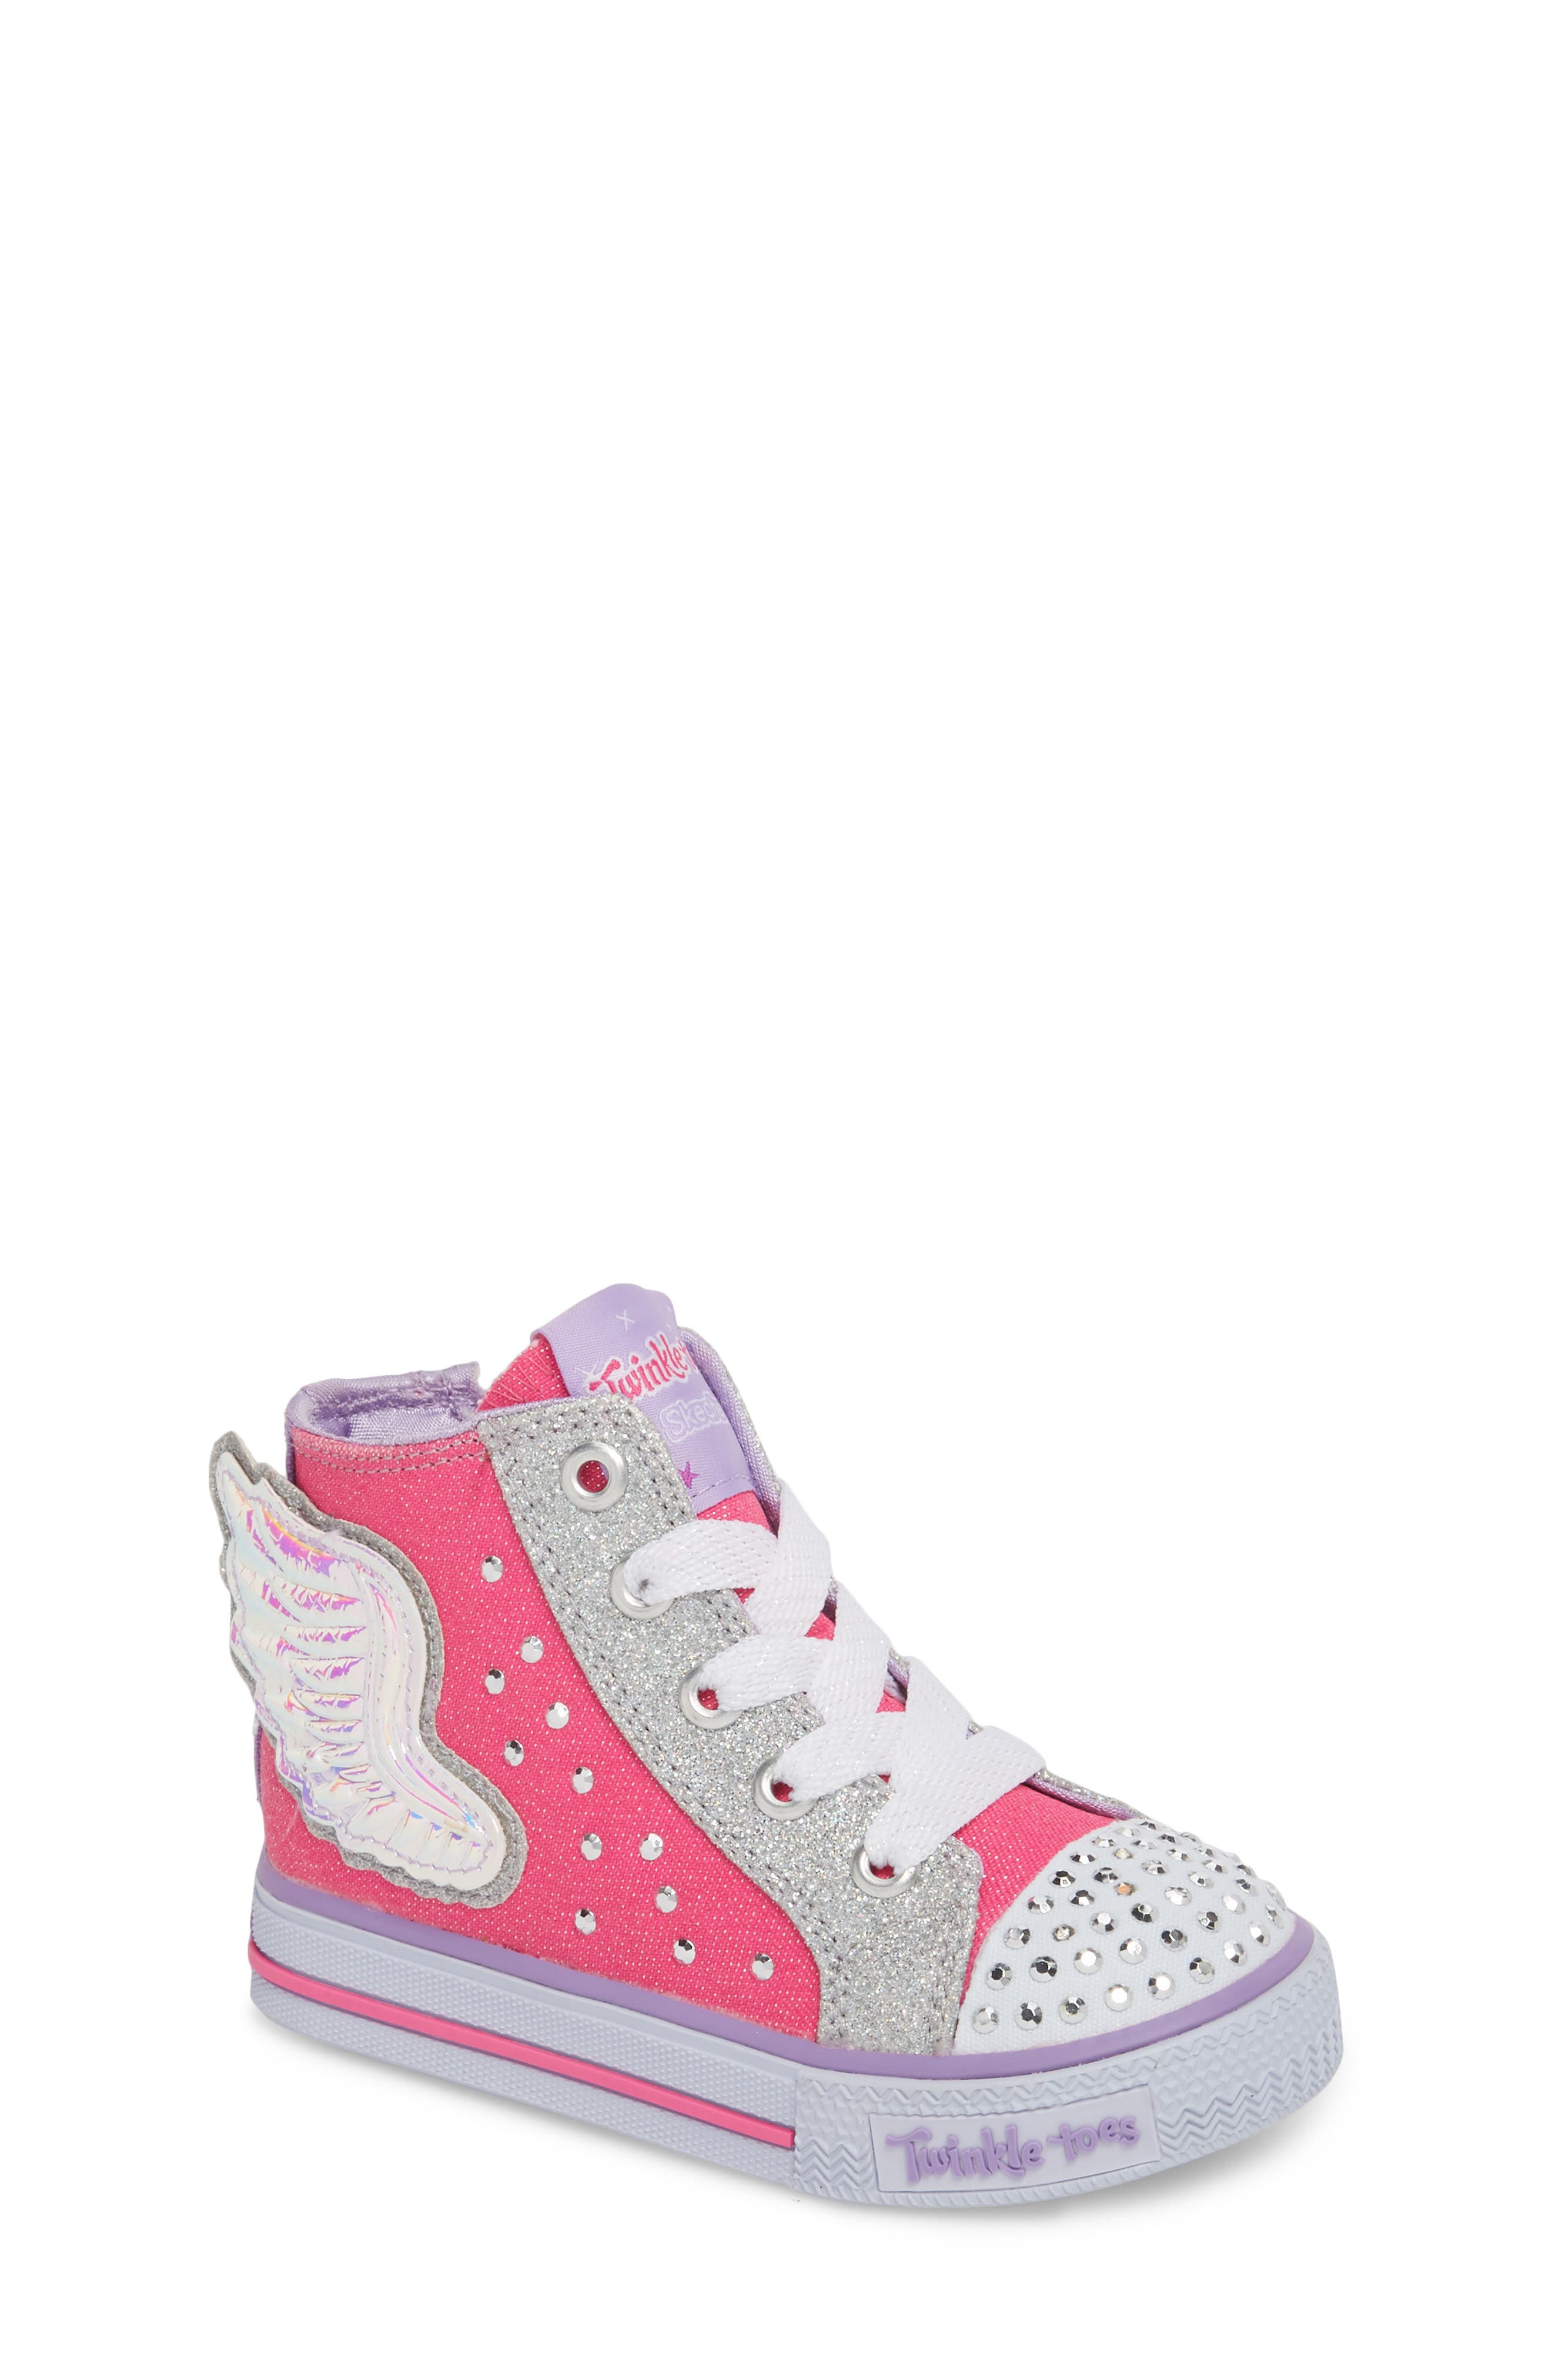 Twinkle Toes Shuffles Fooling Flutters Light-Up High Top Sneaker,                         Main,                         color, Hot Pink/ Silver